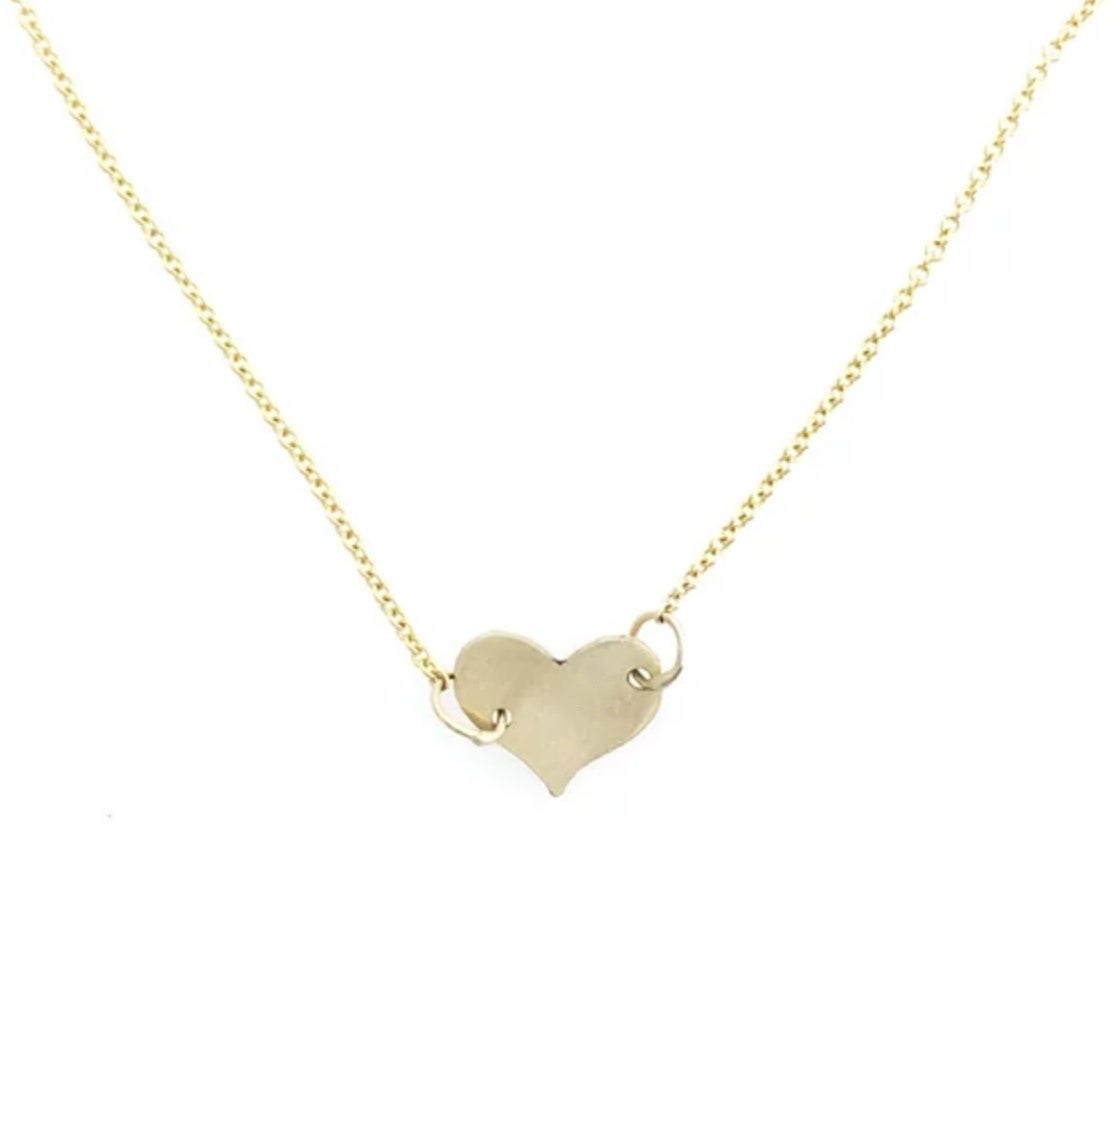 Image of Only Heart Necklace